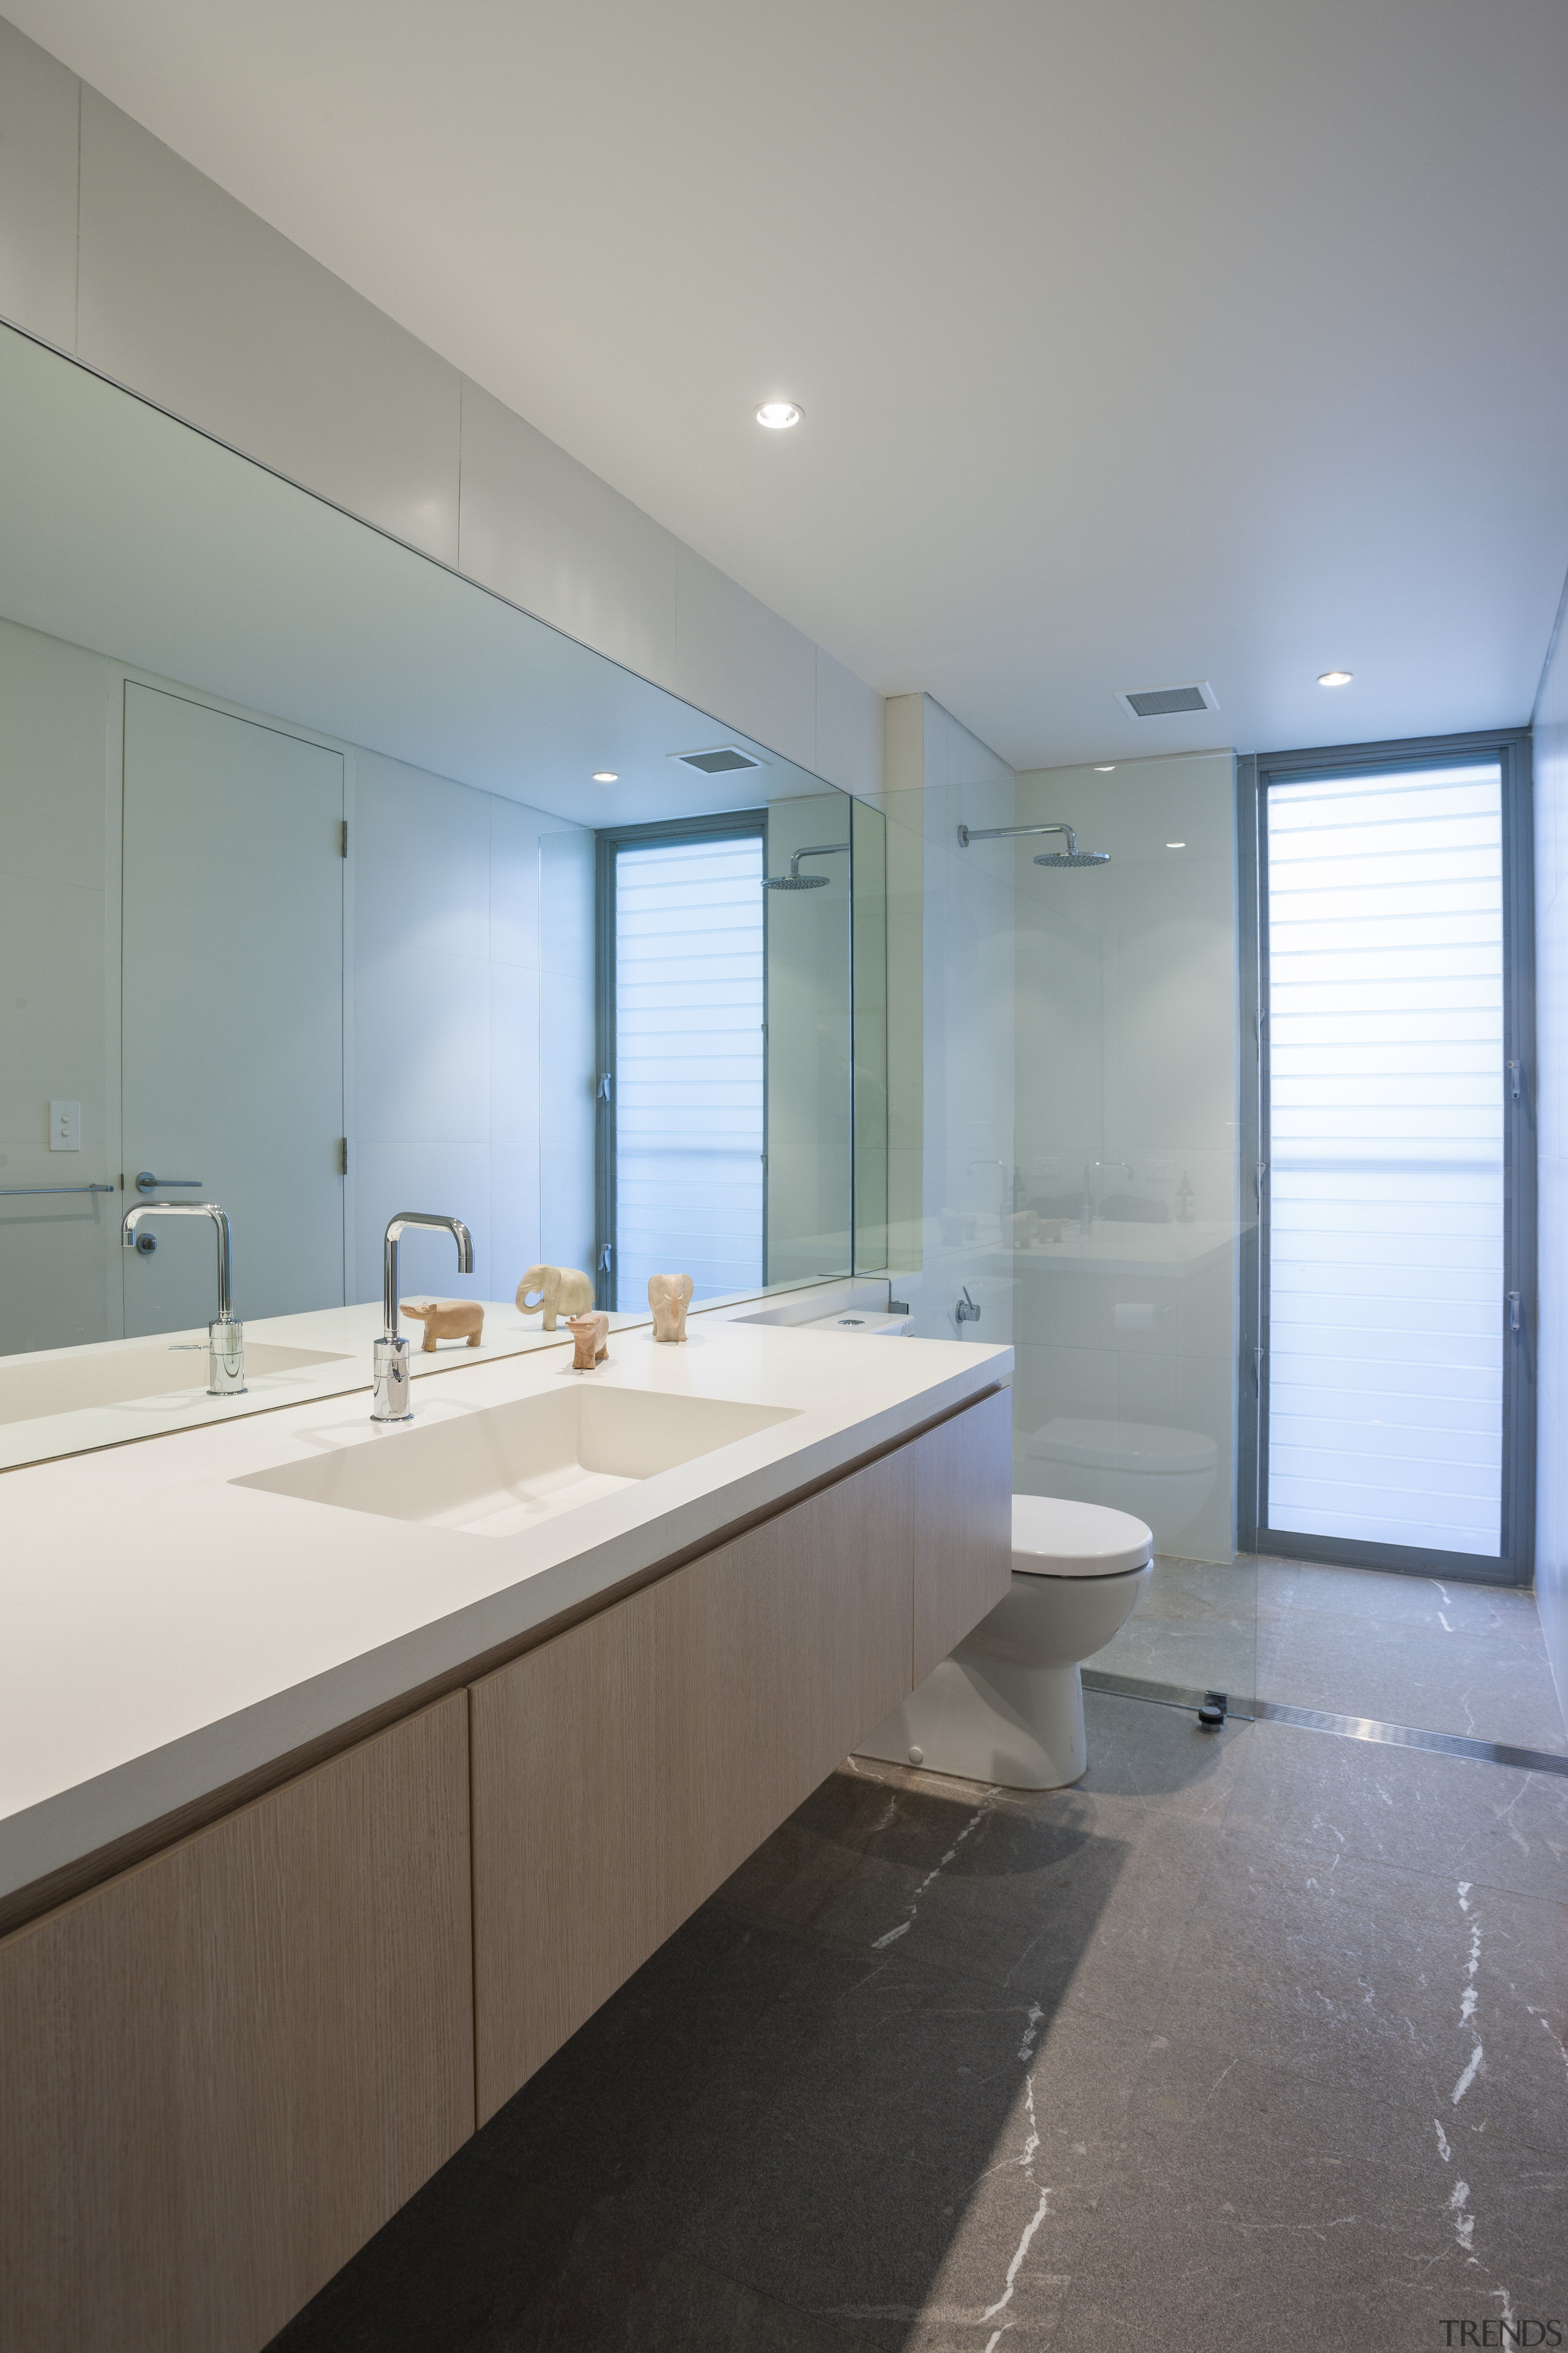 Bathroom with large wall mirror. - Bathroom with architecture, bathroom, ceiling, daylighting, home, house, interior design, real estate, room, sink, gray